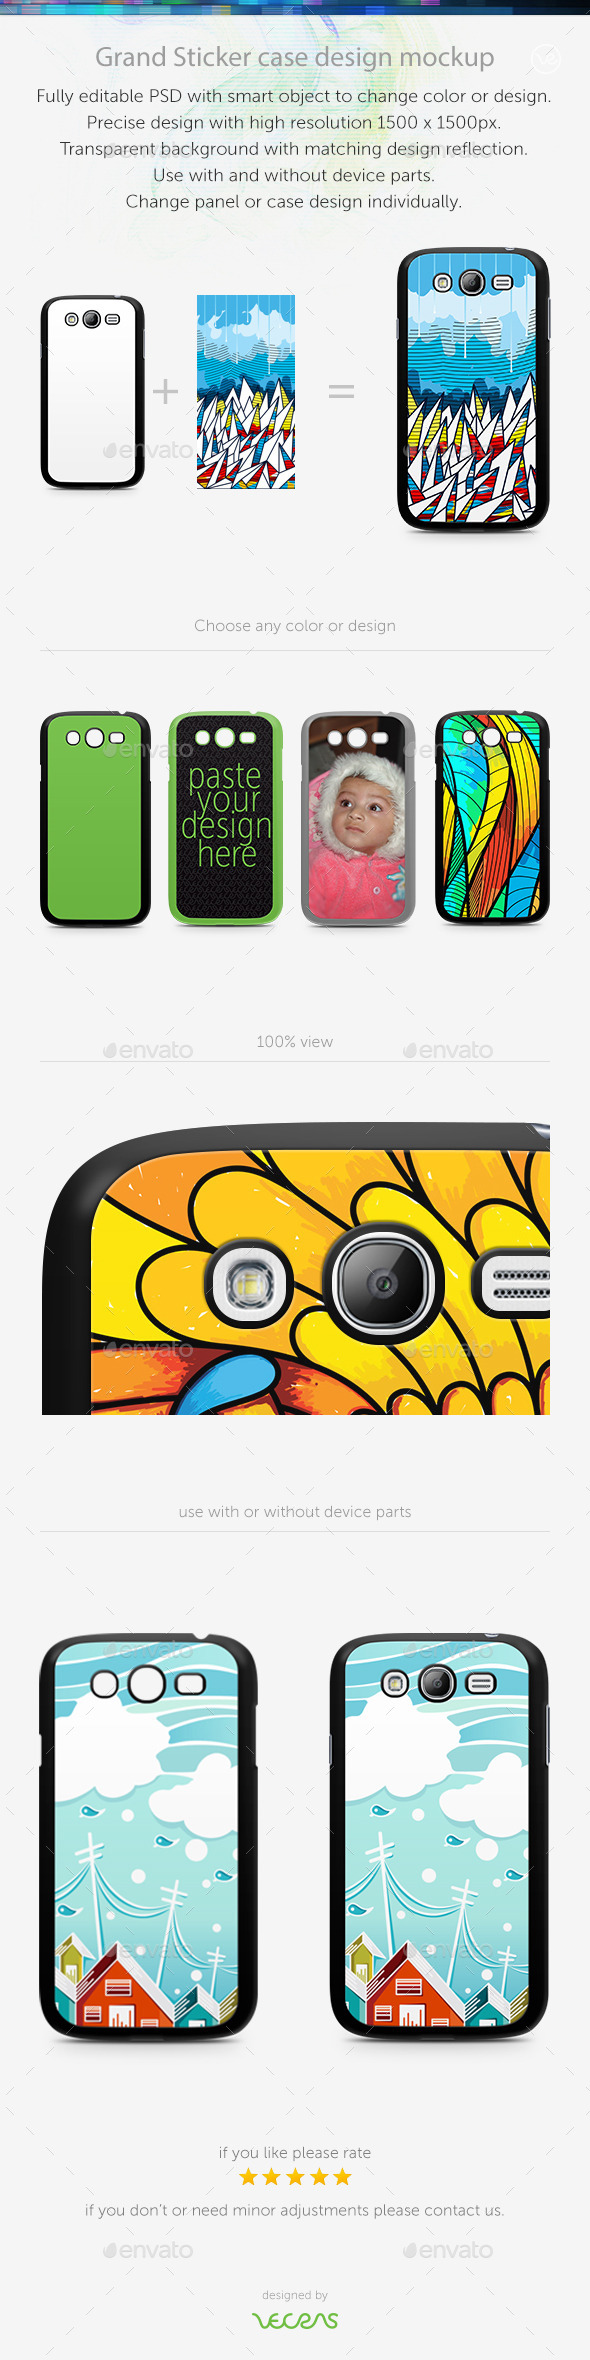 GraphicRiver Grand Sticker Case Design Mockup 10350418